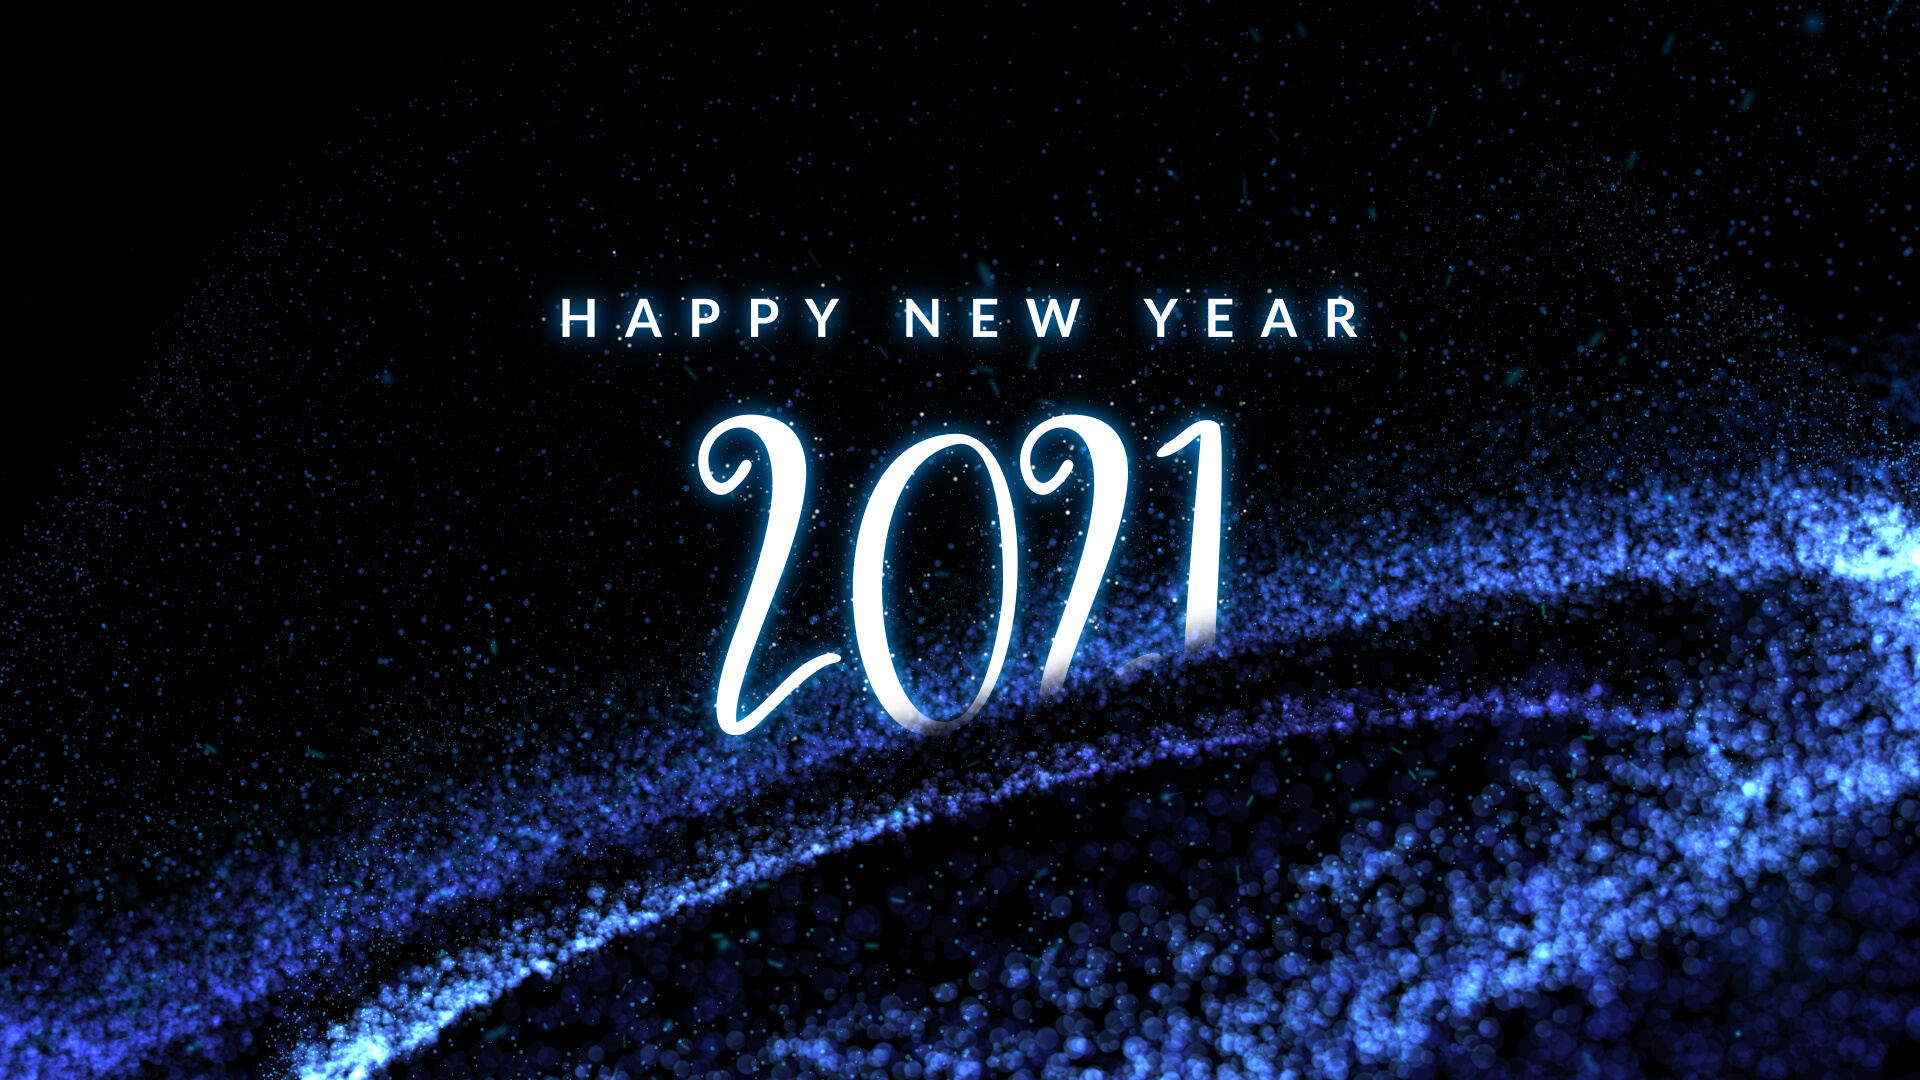 Happy New Year 2021 Particle Animation Video Still